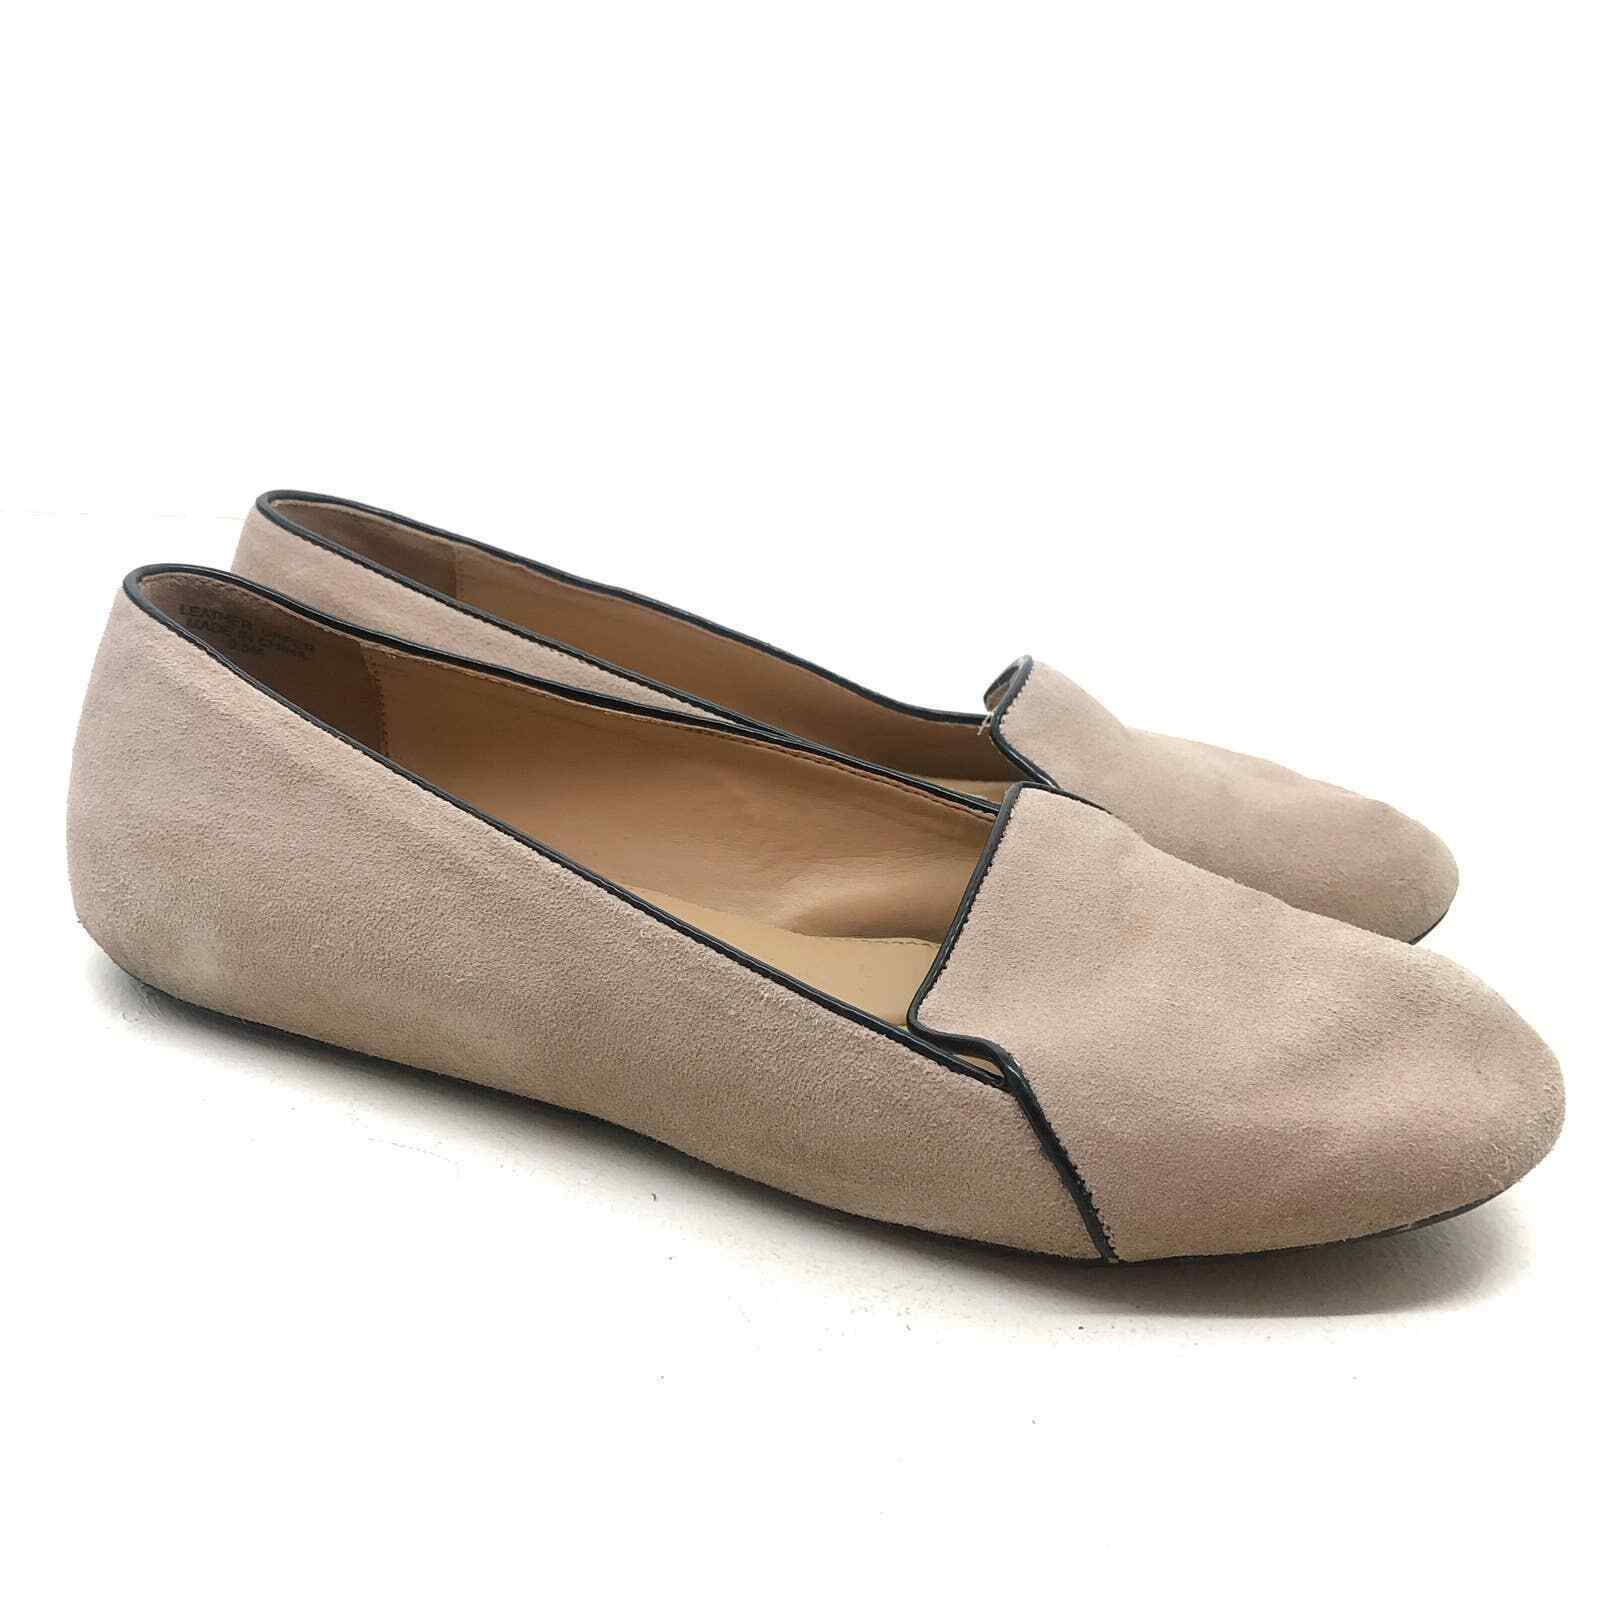 Talbots nude suede loafers with black trim flats round toe black trim 9.5